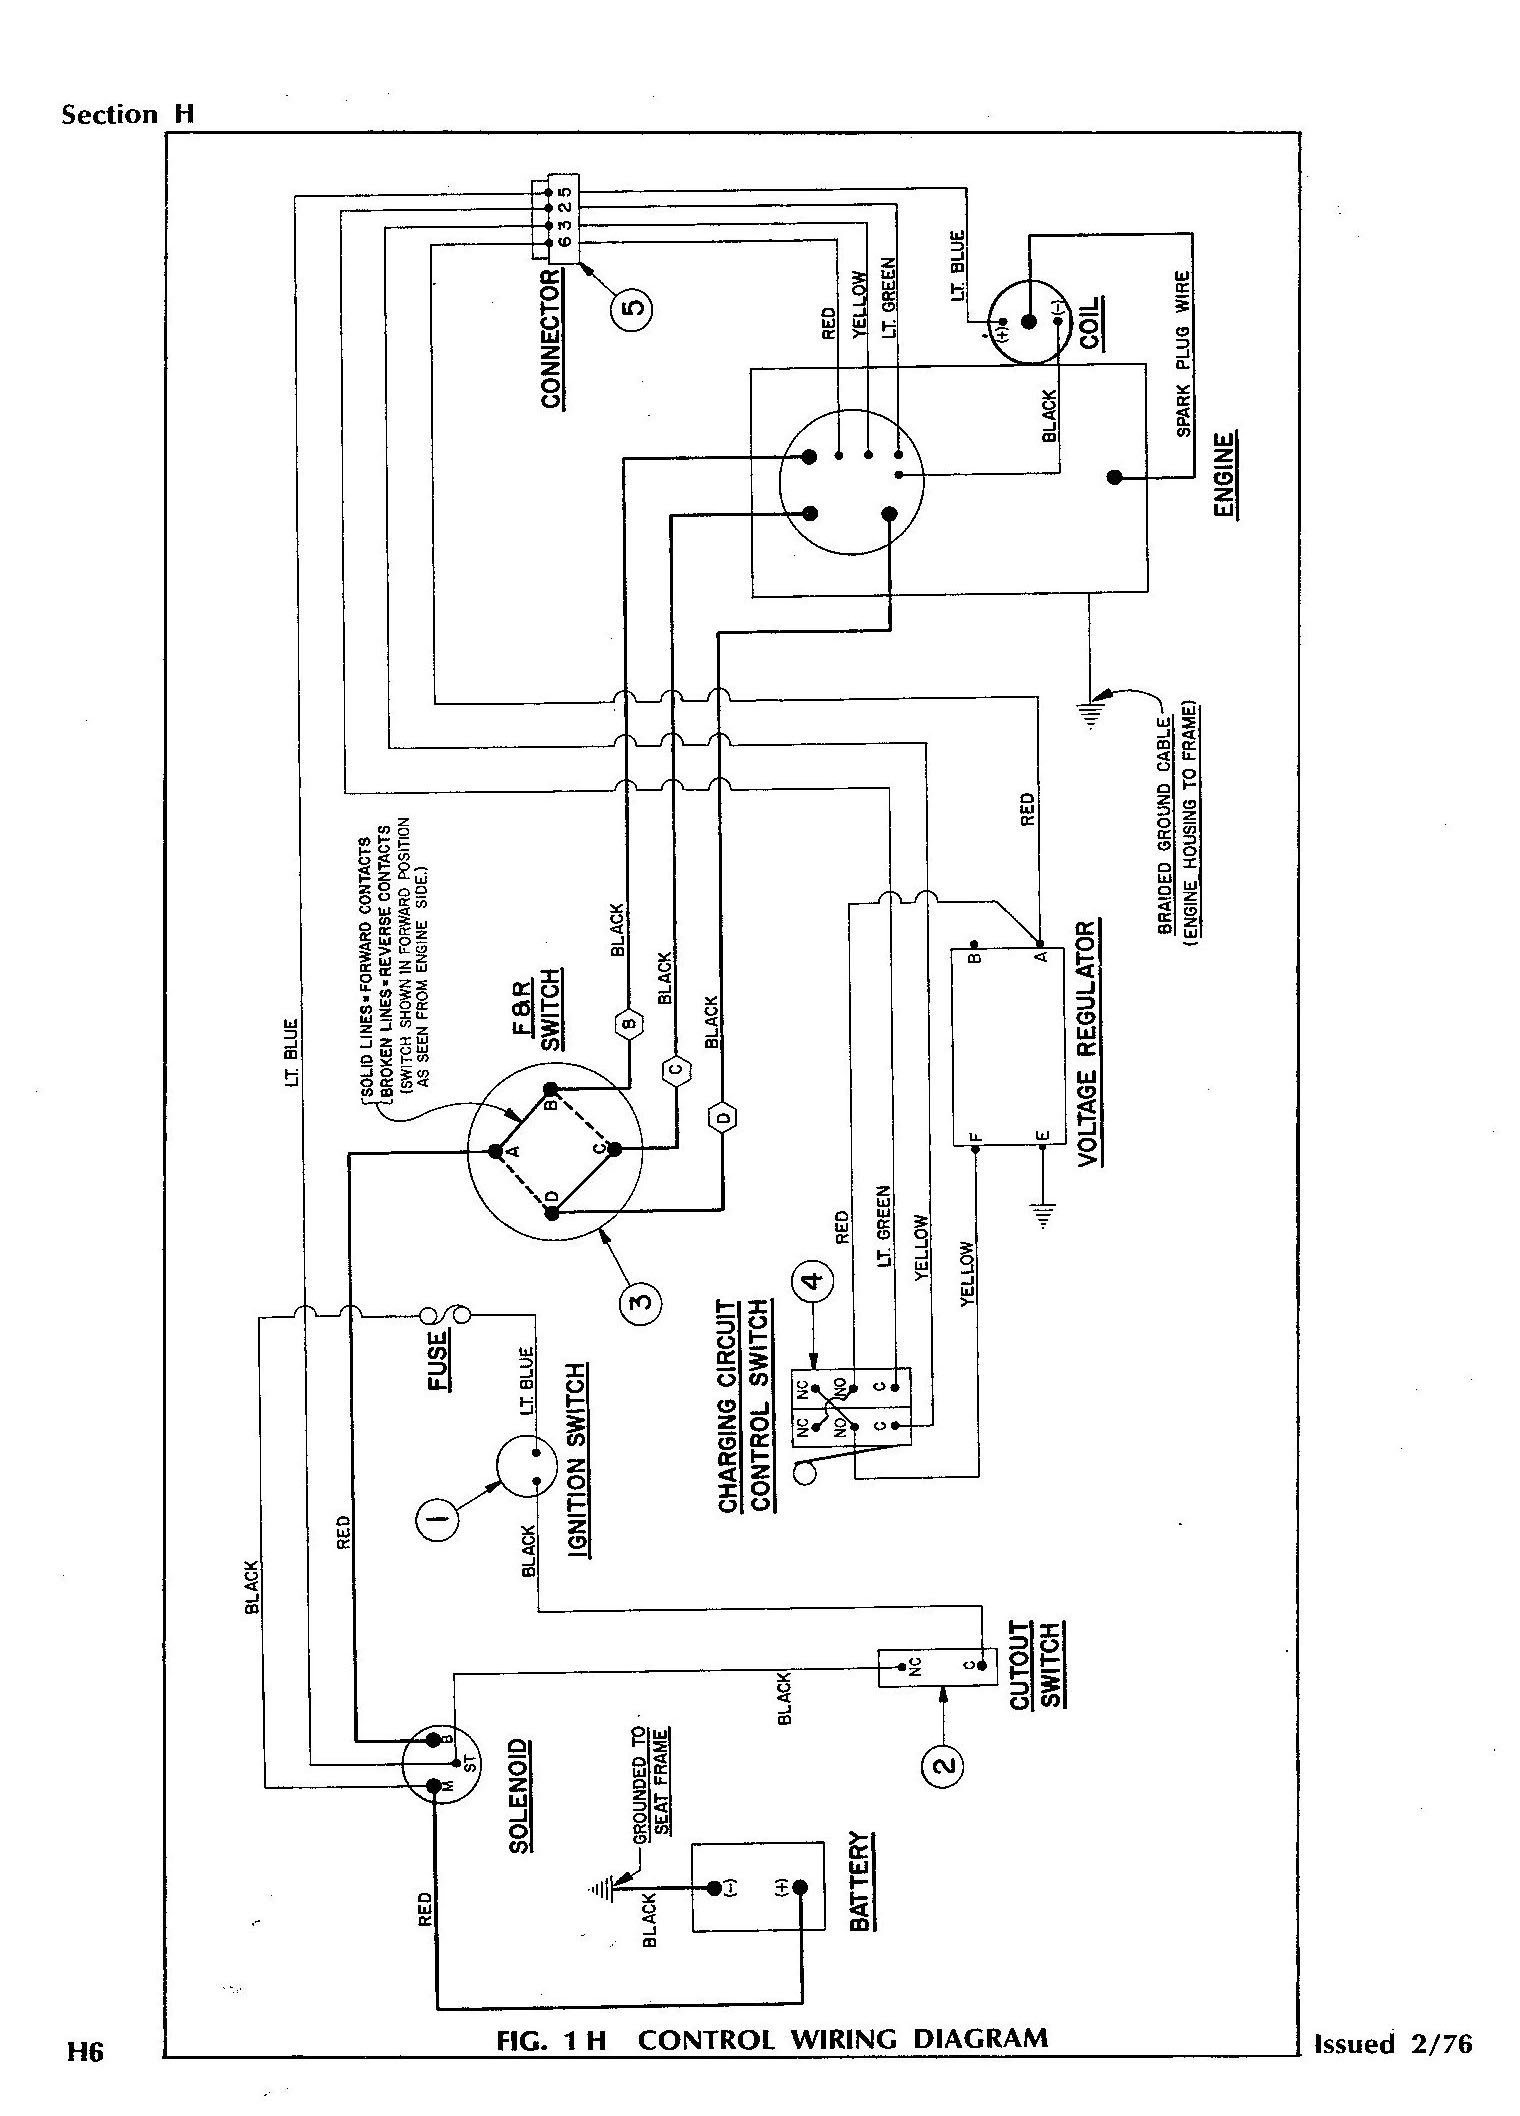 Gas Powered Ez Go Electrical Schematics Wire Center Hyundai Wiring 1976 Ezgo Diagram House U2022 Rh Universalservices Co 36v Schematic Pace Arrow